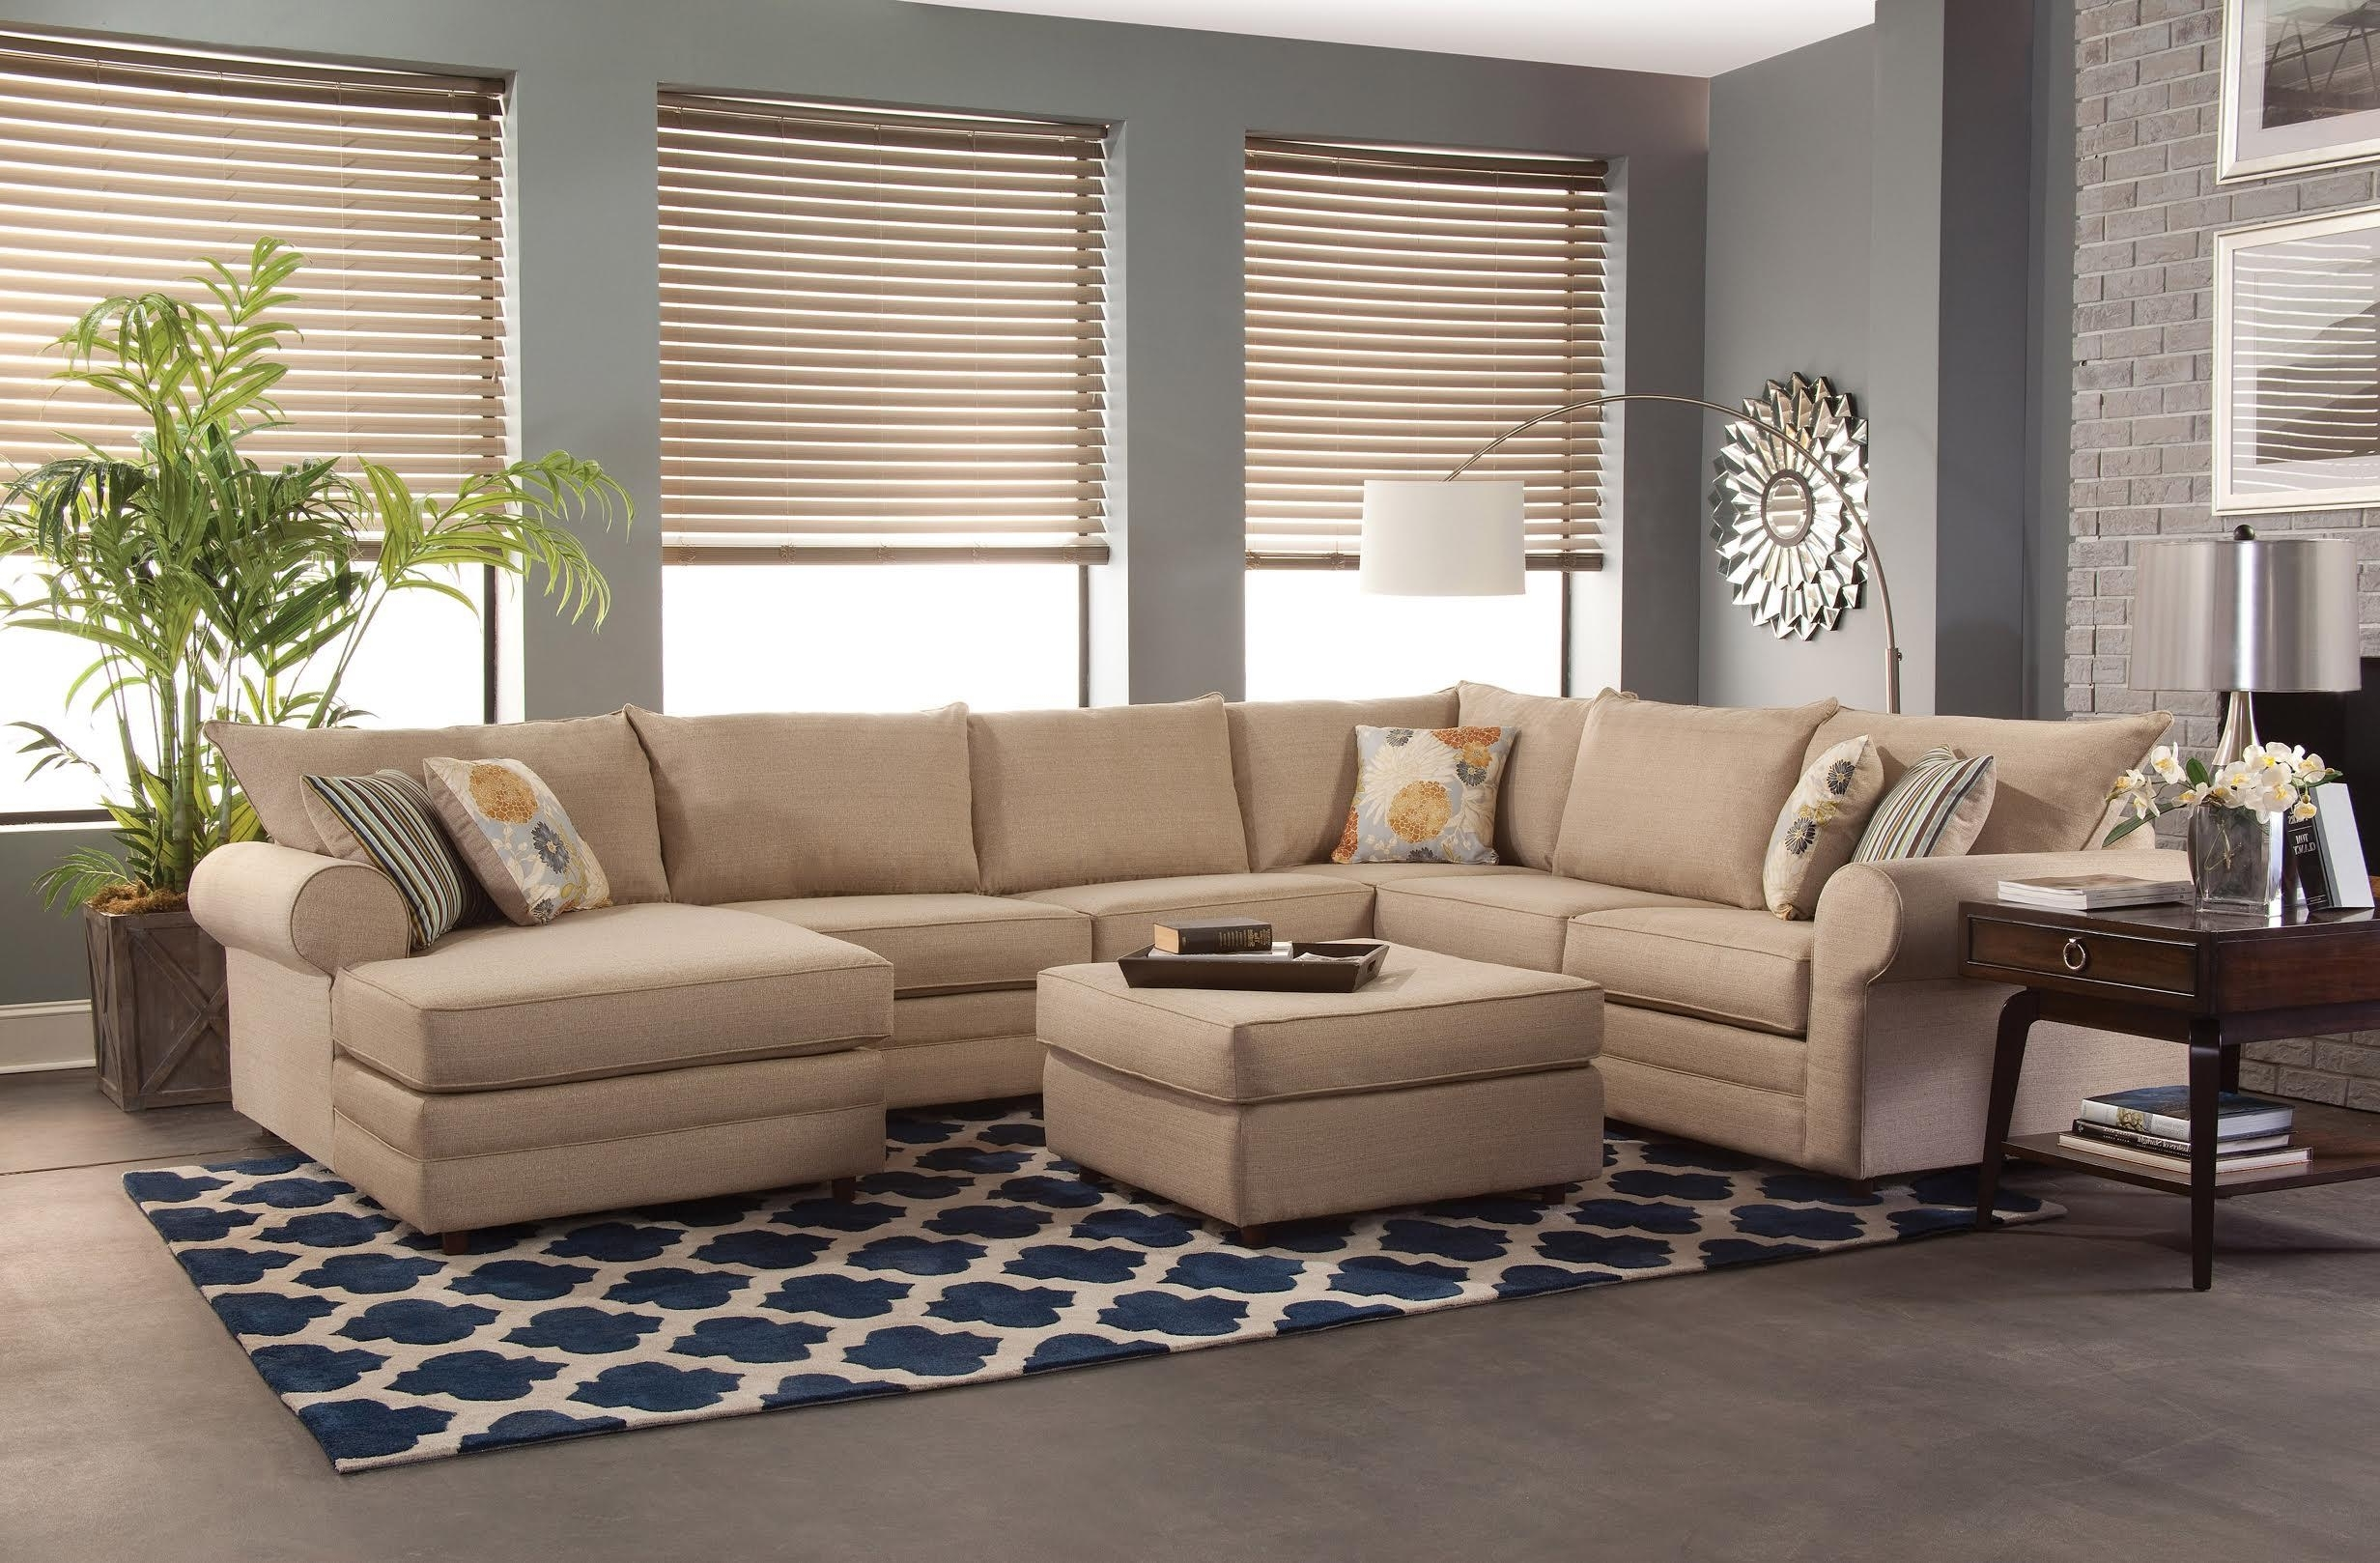 Well Known Maryland Sofas Throughout Belfort Essentials Monticello Casual Sectional Sofa (View 7 of 20)